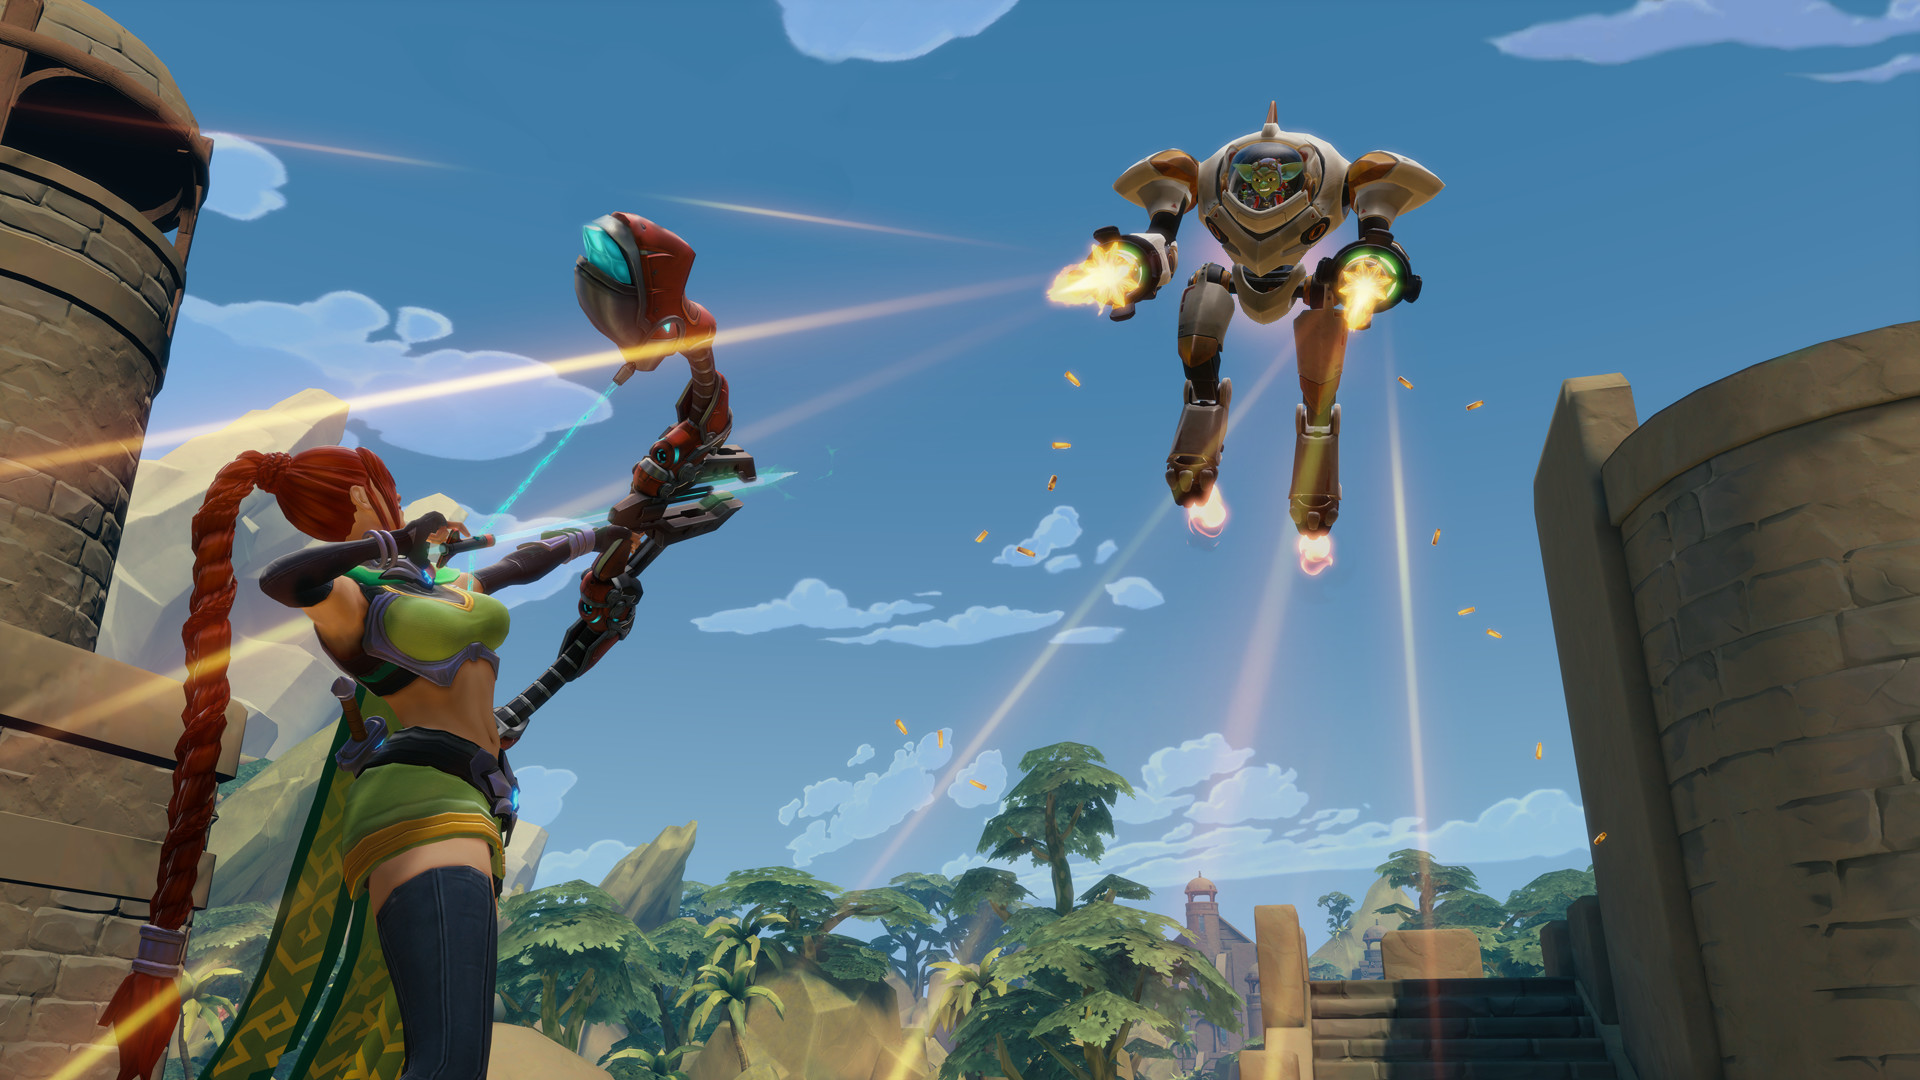 Paladins is a free to play team shooter on Steam